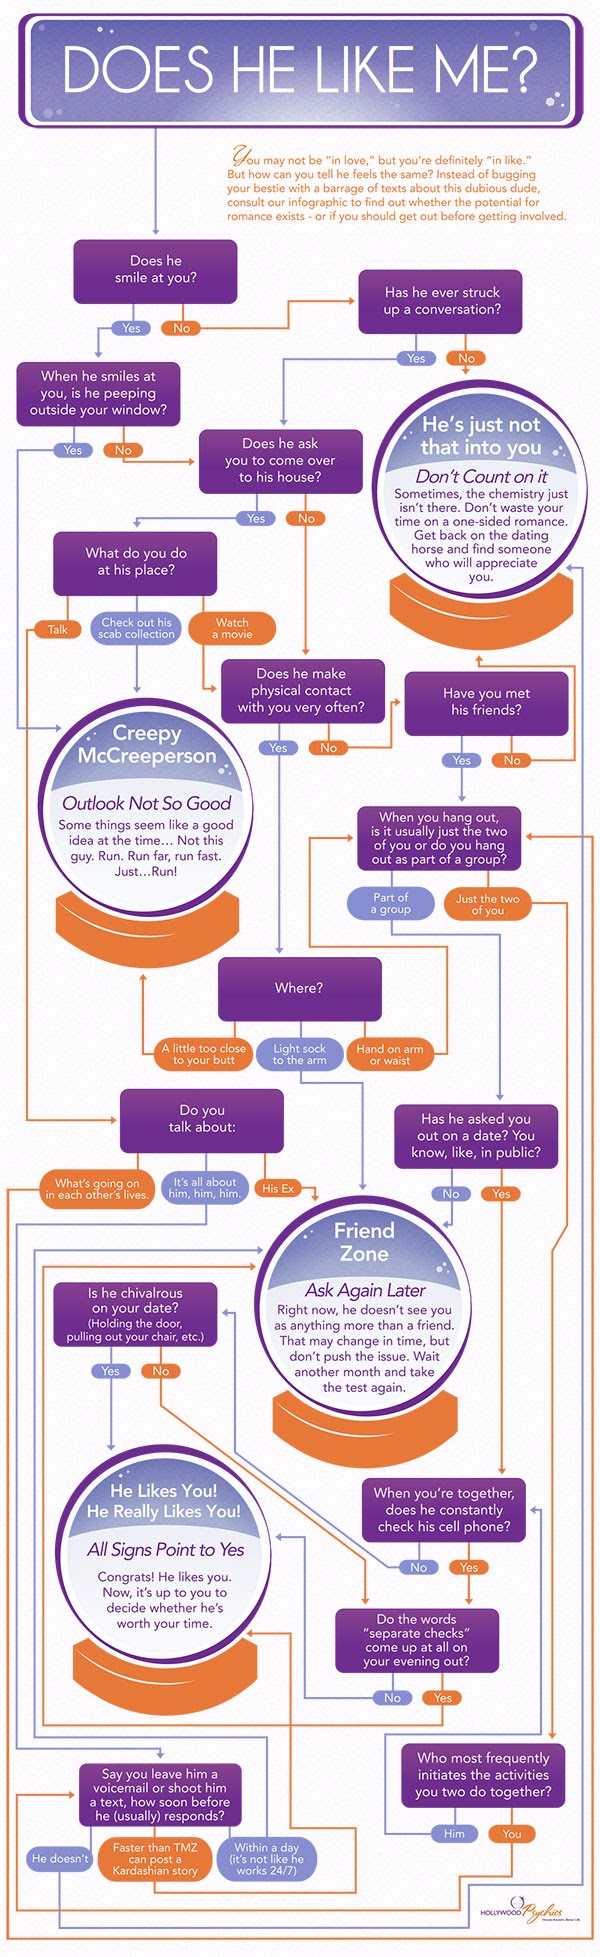 Does He Like You #infographic